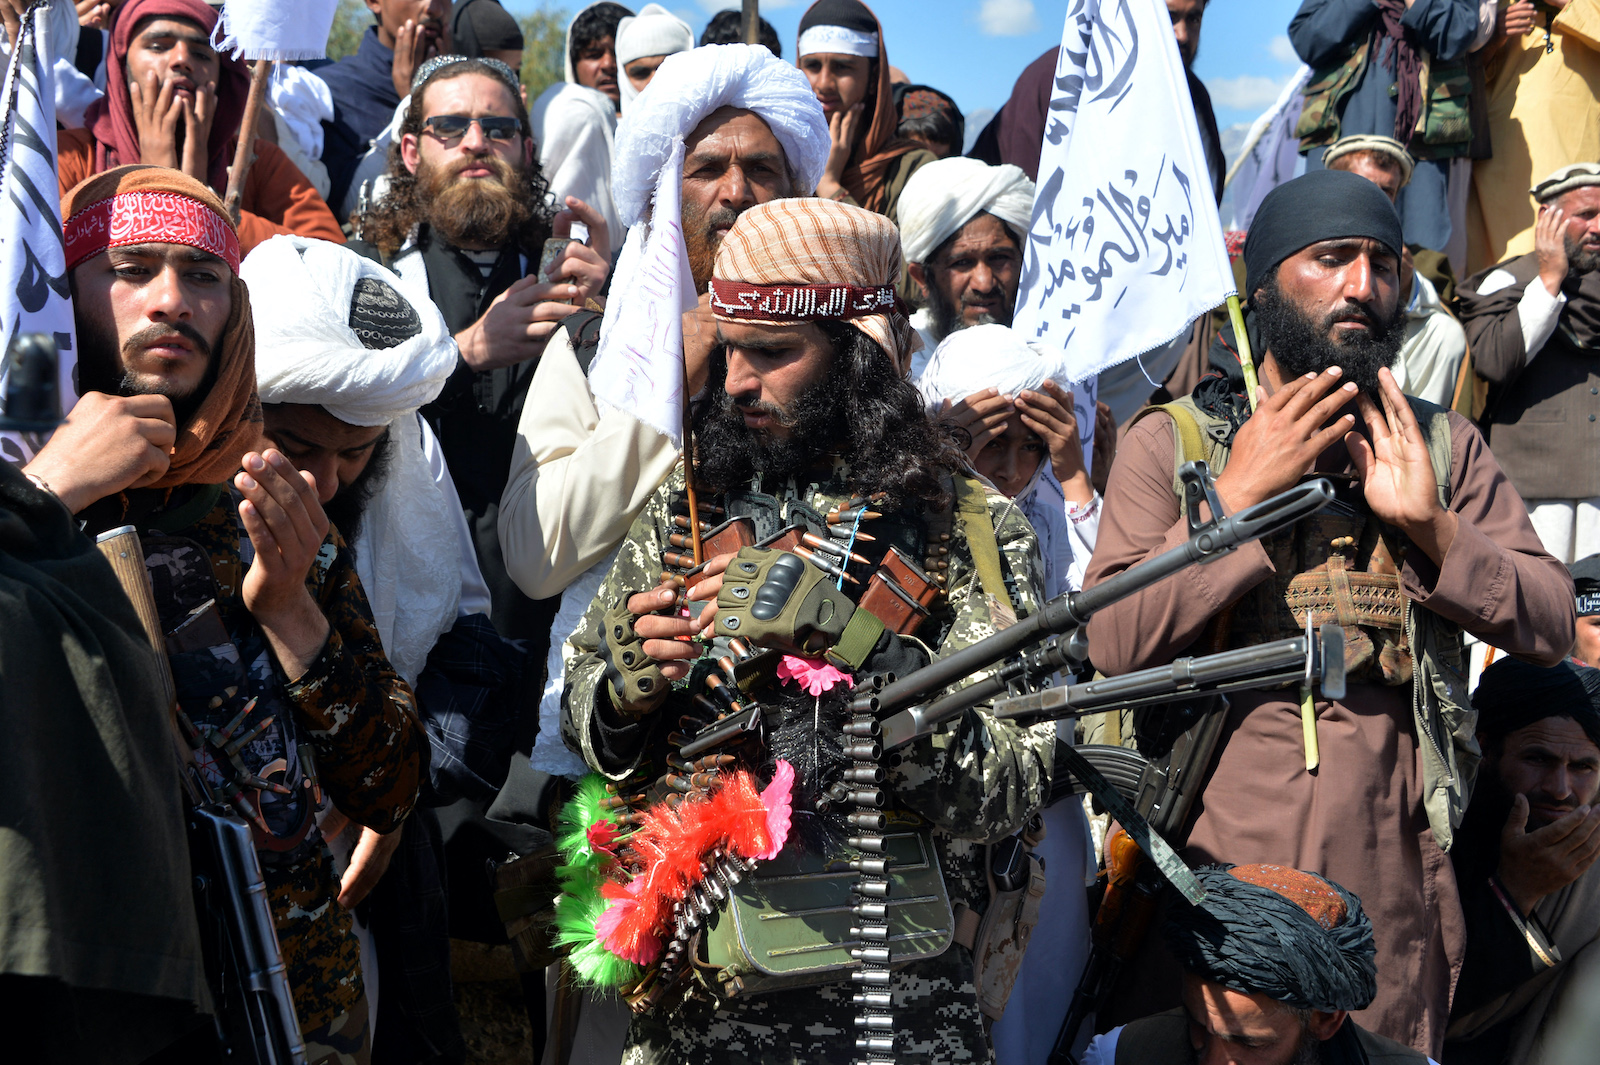 >Afghan Taliban militants and villagers attend a gathering as they celebrate the peace deal and their victory in the Afghan conflict on US in Afghanistan, in Alingar district of Laghman Province on March 2, 2020. Photo: AFP / Noorullah Shirzada